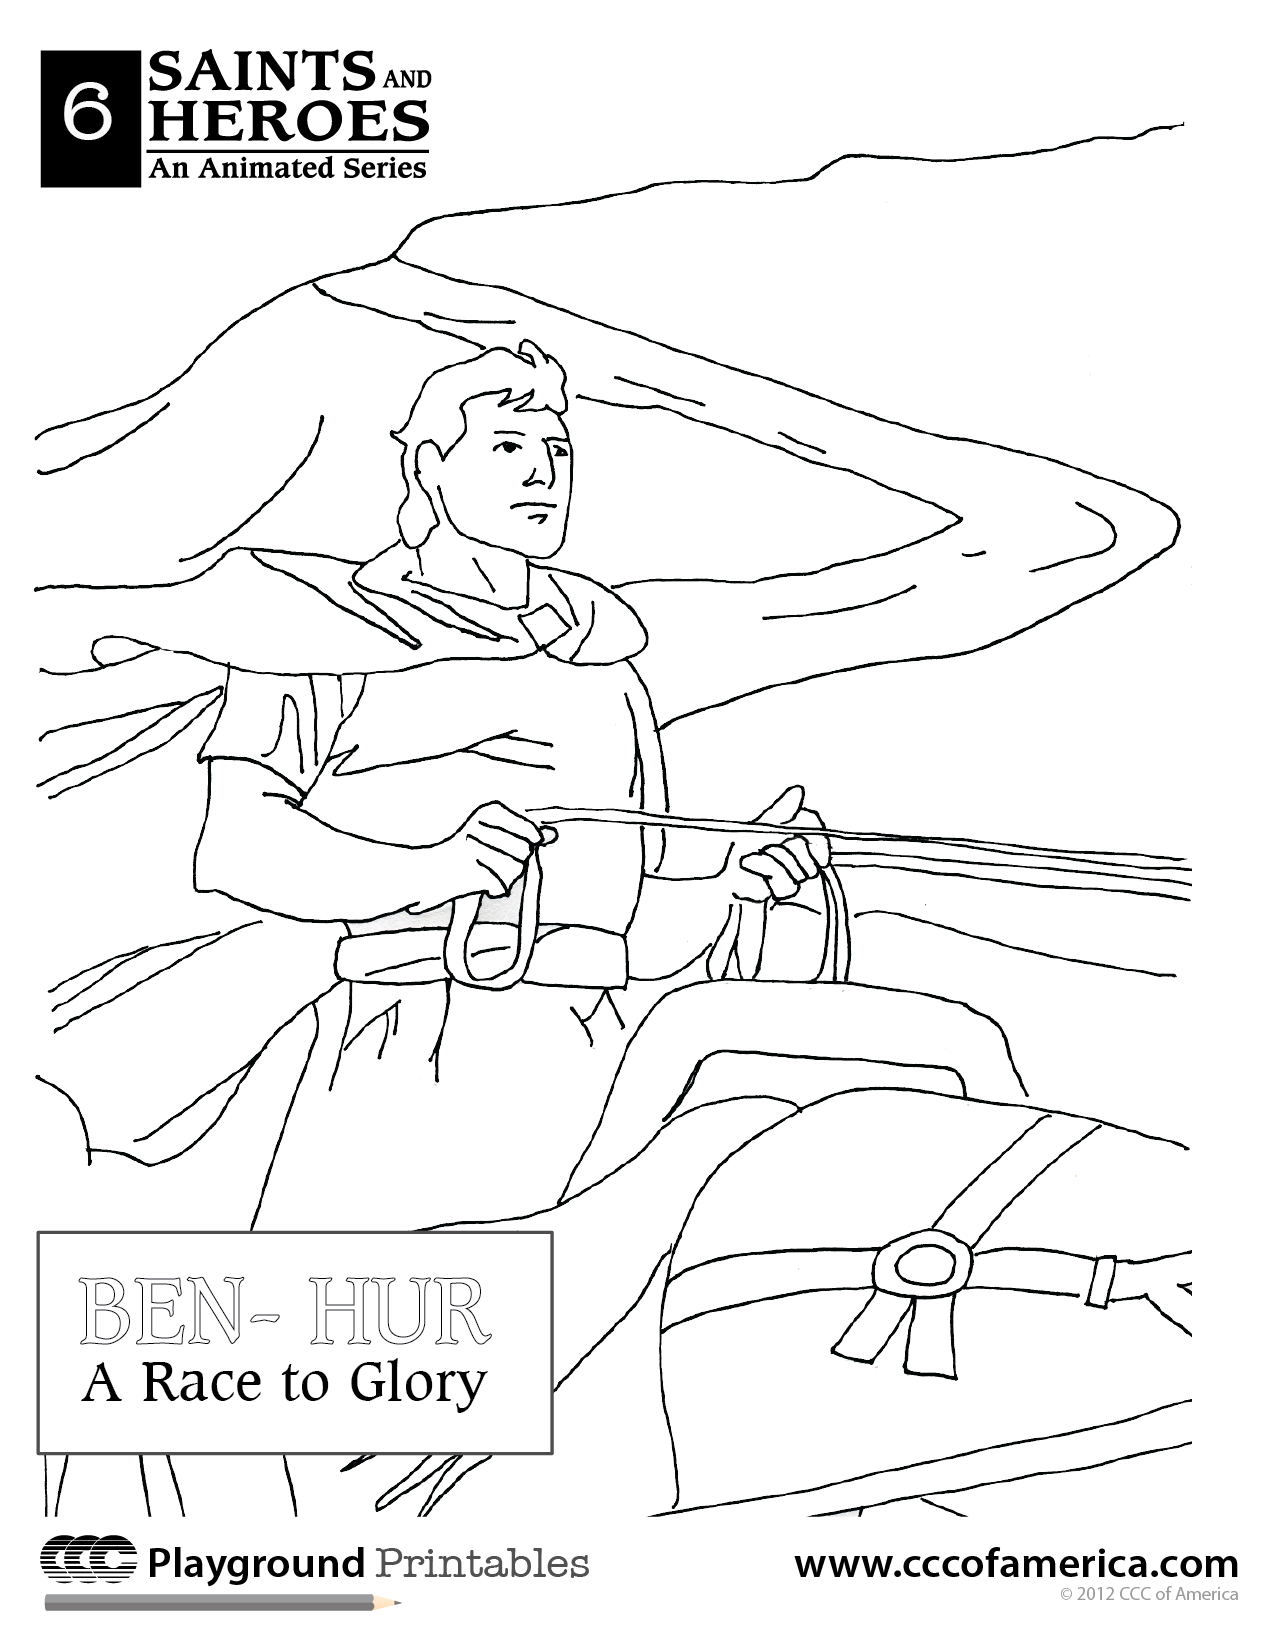 Coloring Pages For Kids In The New Ccc Site Coloring Pages